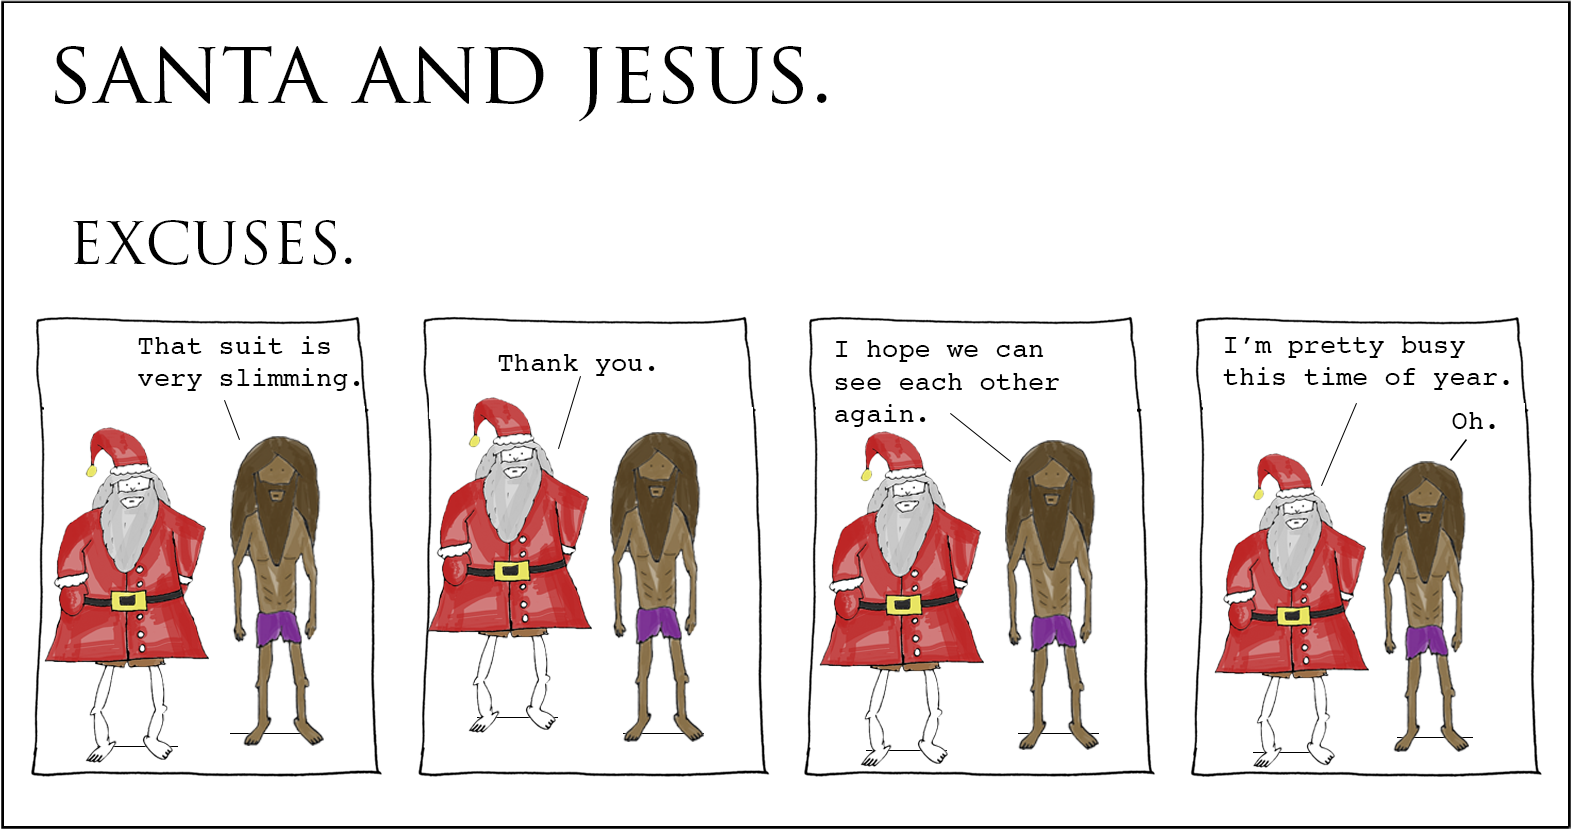 Santa and Jesus - Excuses.